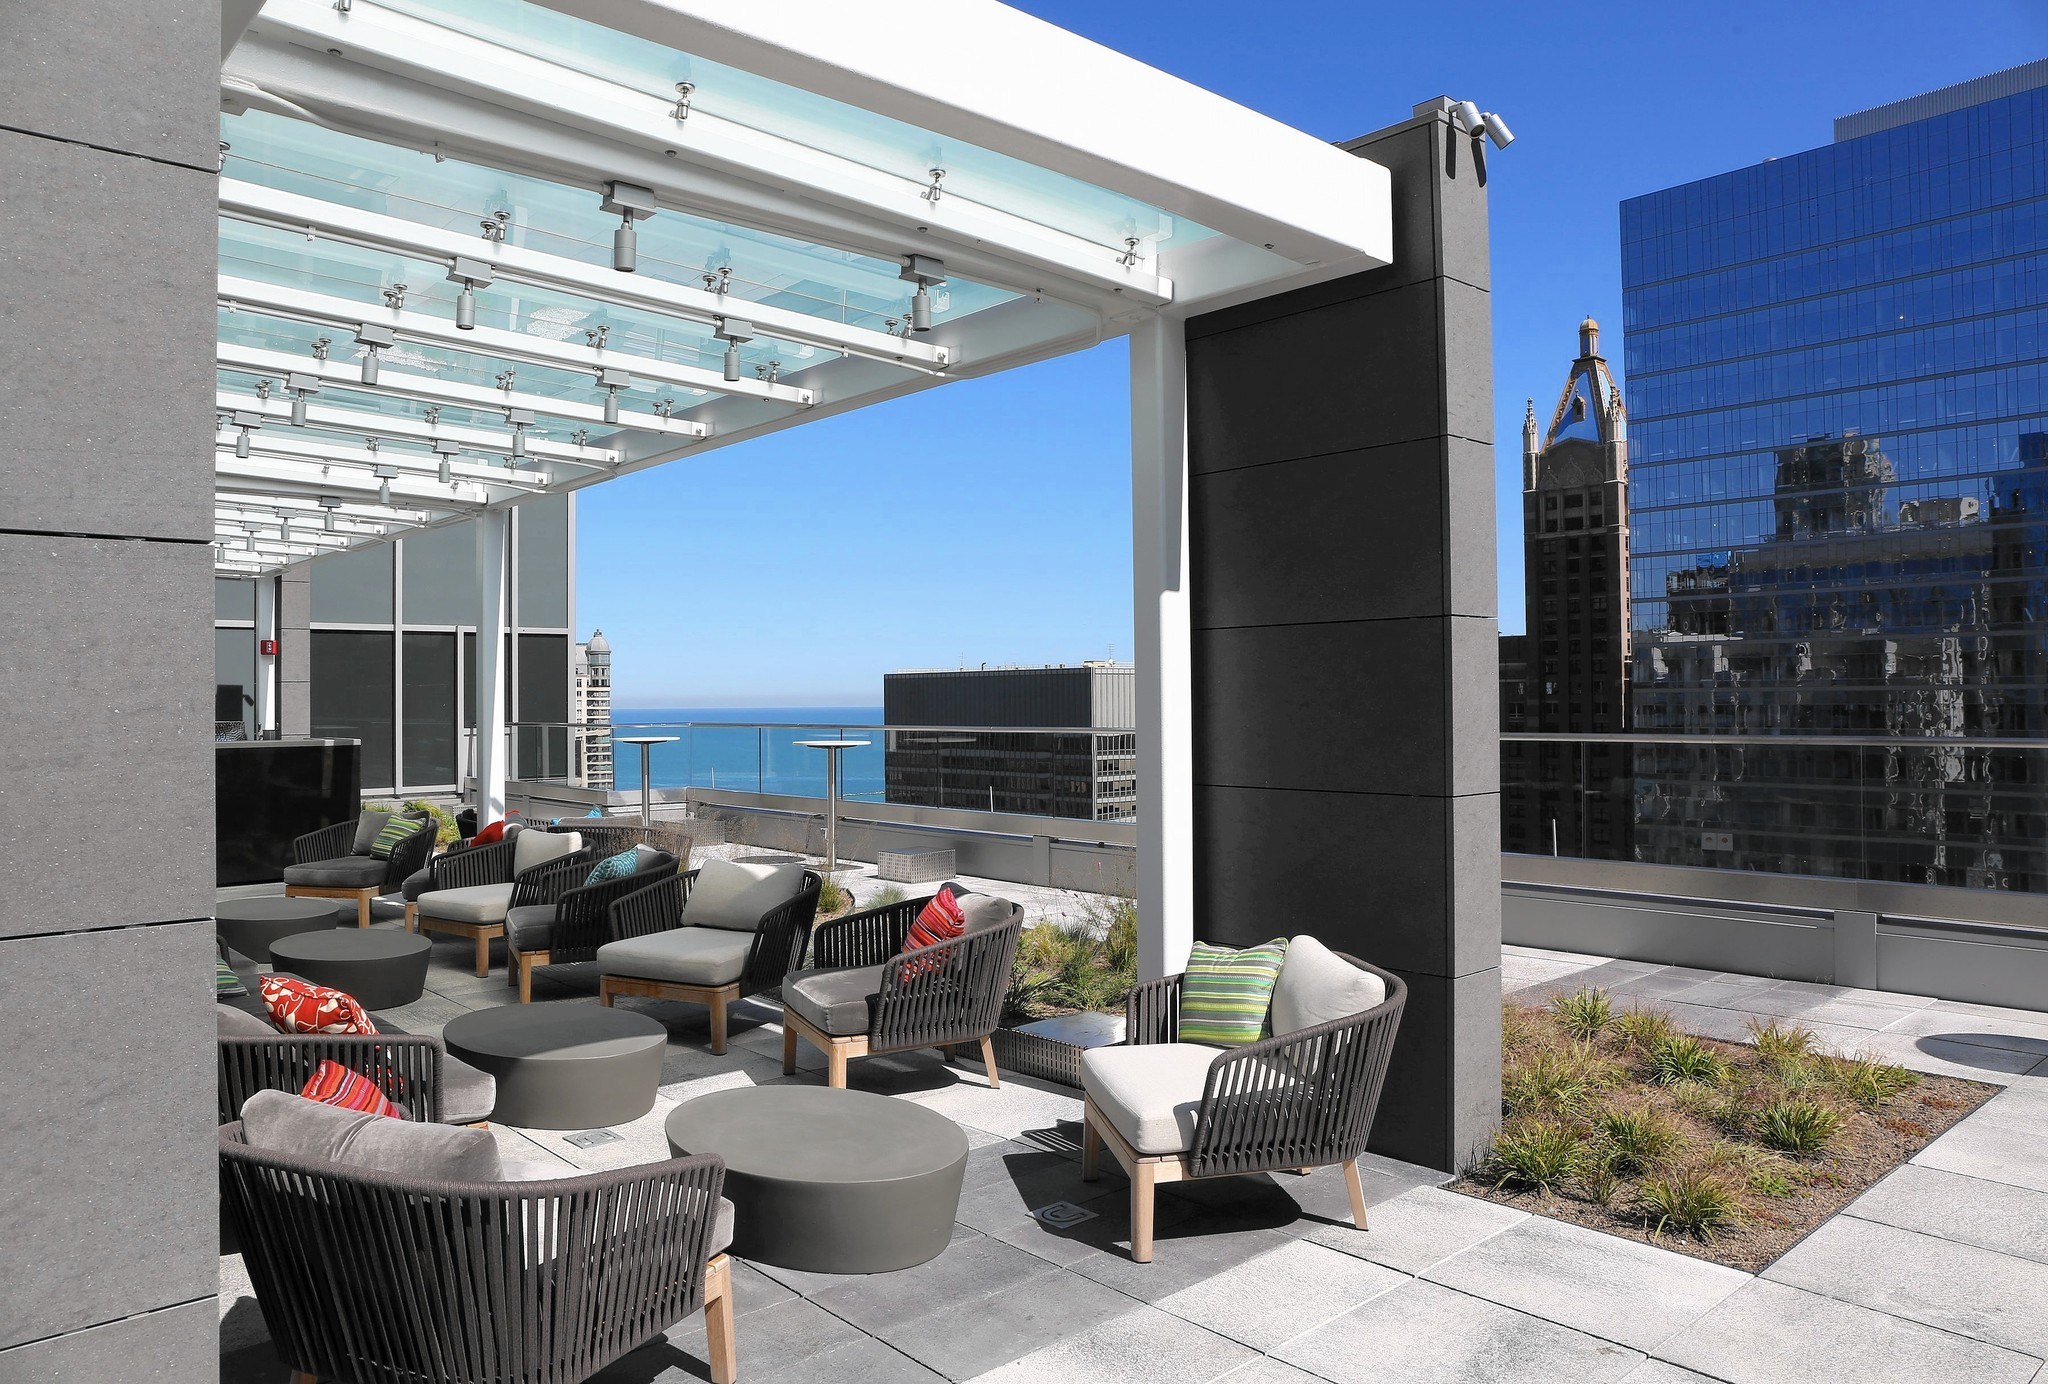 Updated: 130-plus Chicago patios and rooftops for summer eating ...